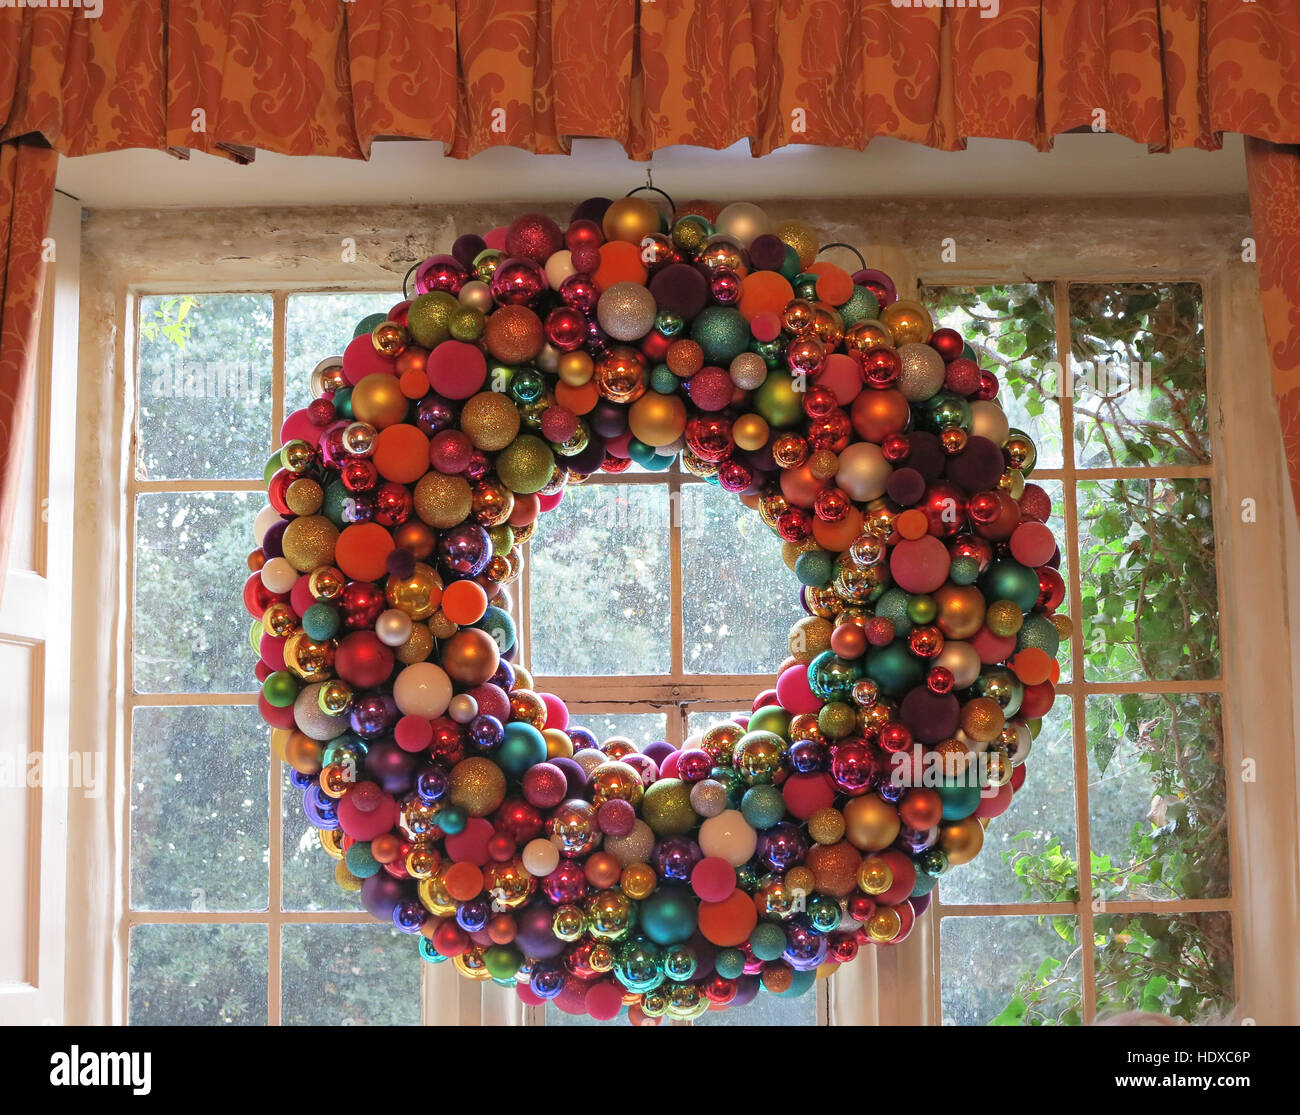 large christmas wreath made of multi coloured baubles hanging in window stock image - Large Christmas Wreath